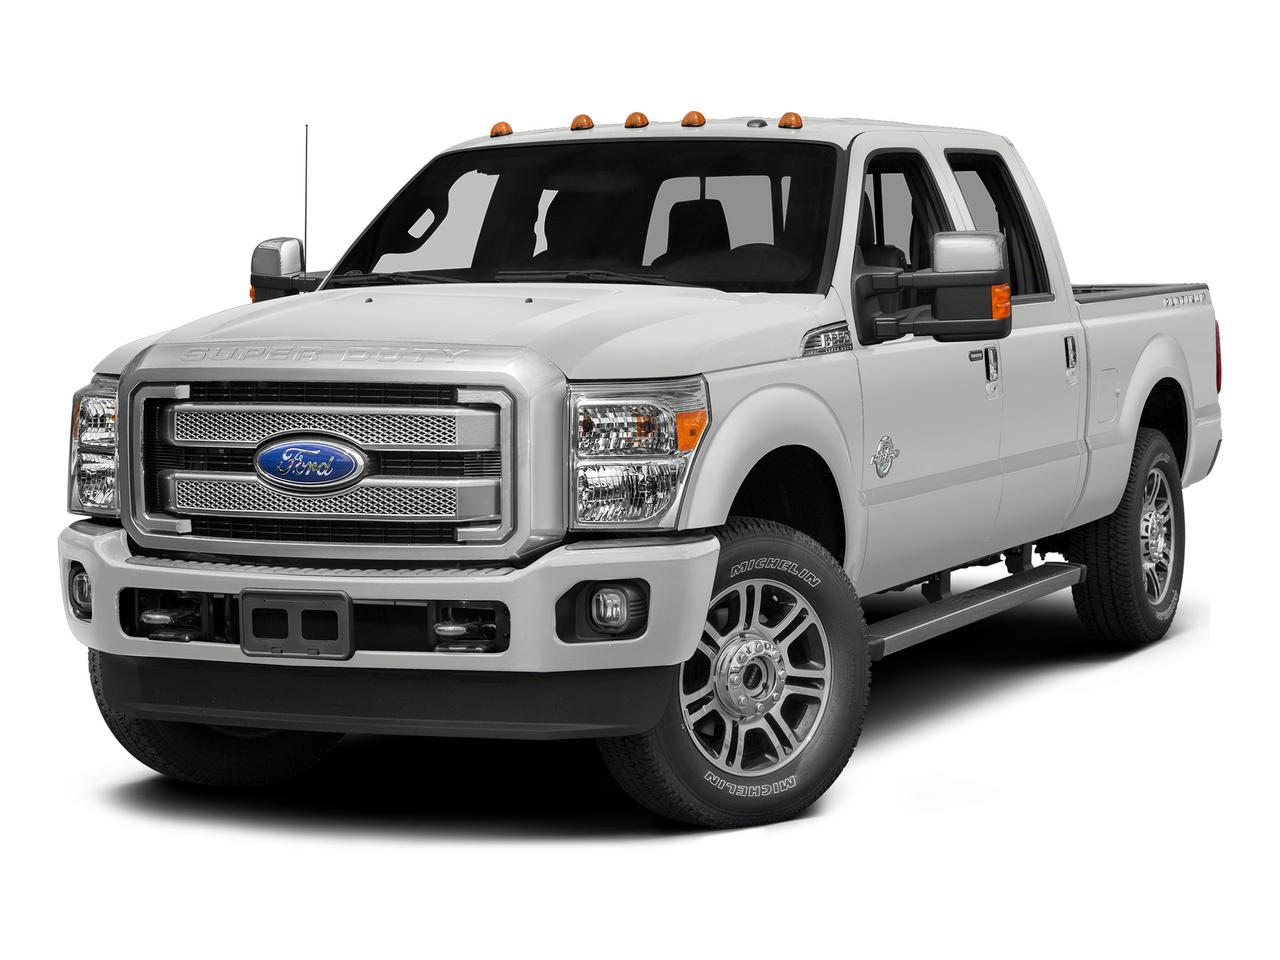 2015 Ford Super Duty F-250 SRW Vehicle Photo in Midland, TX 79703